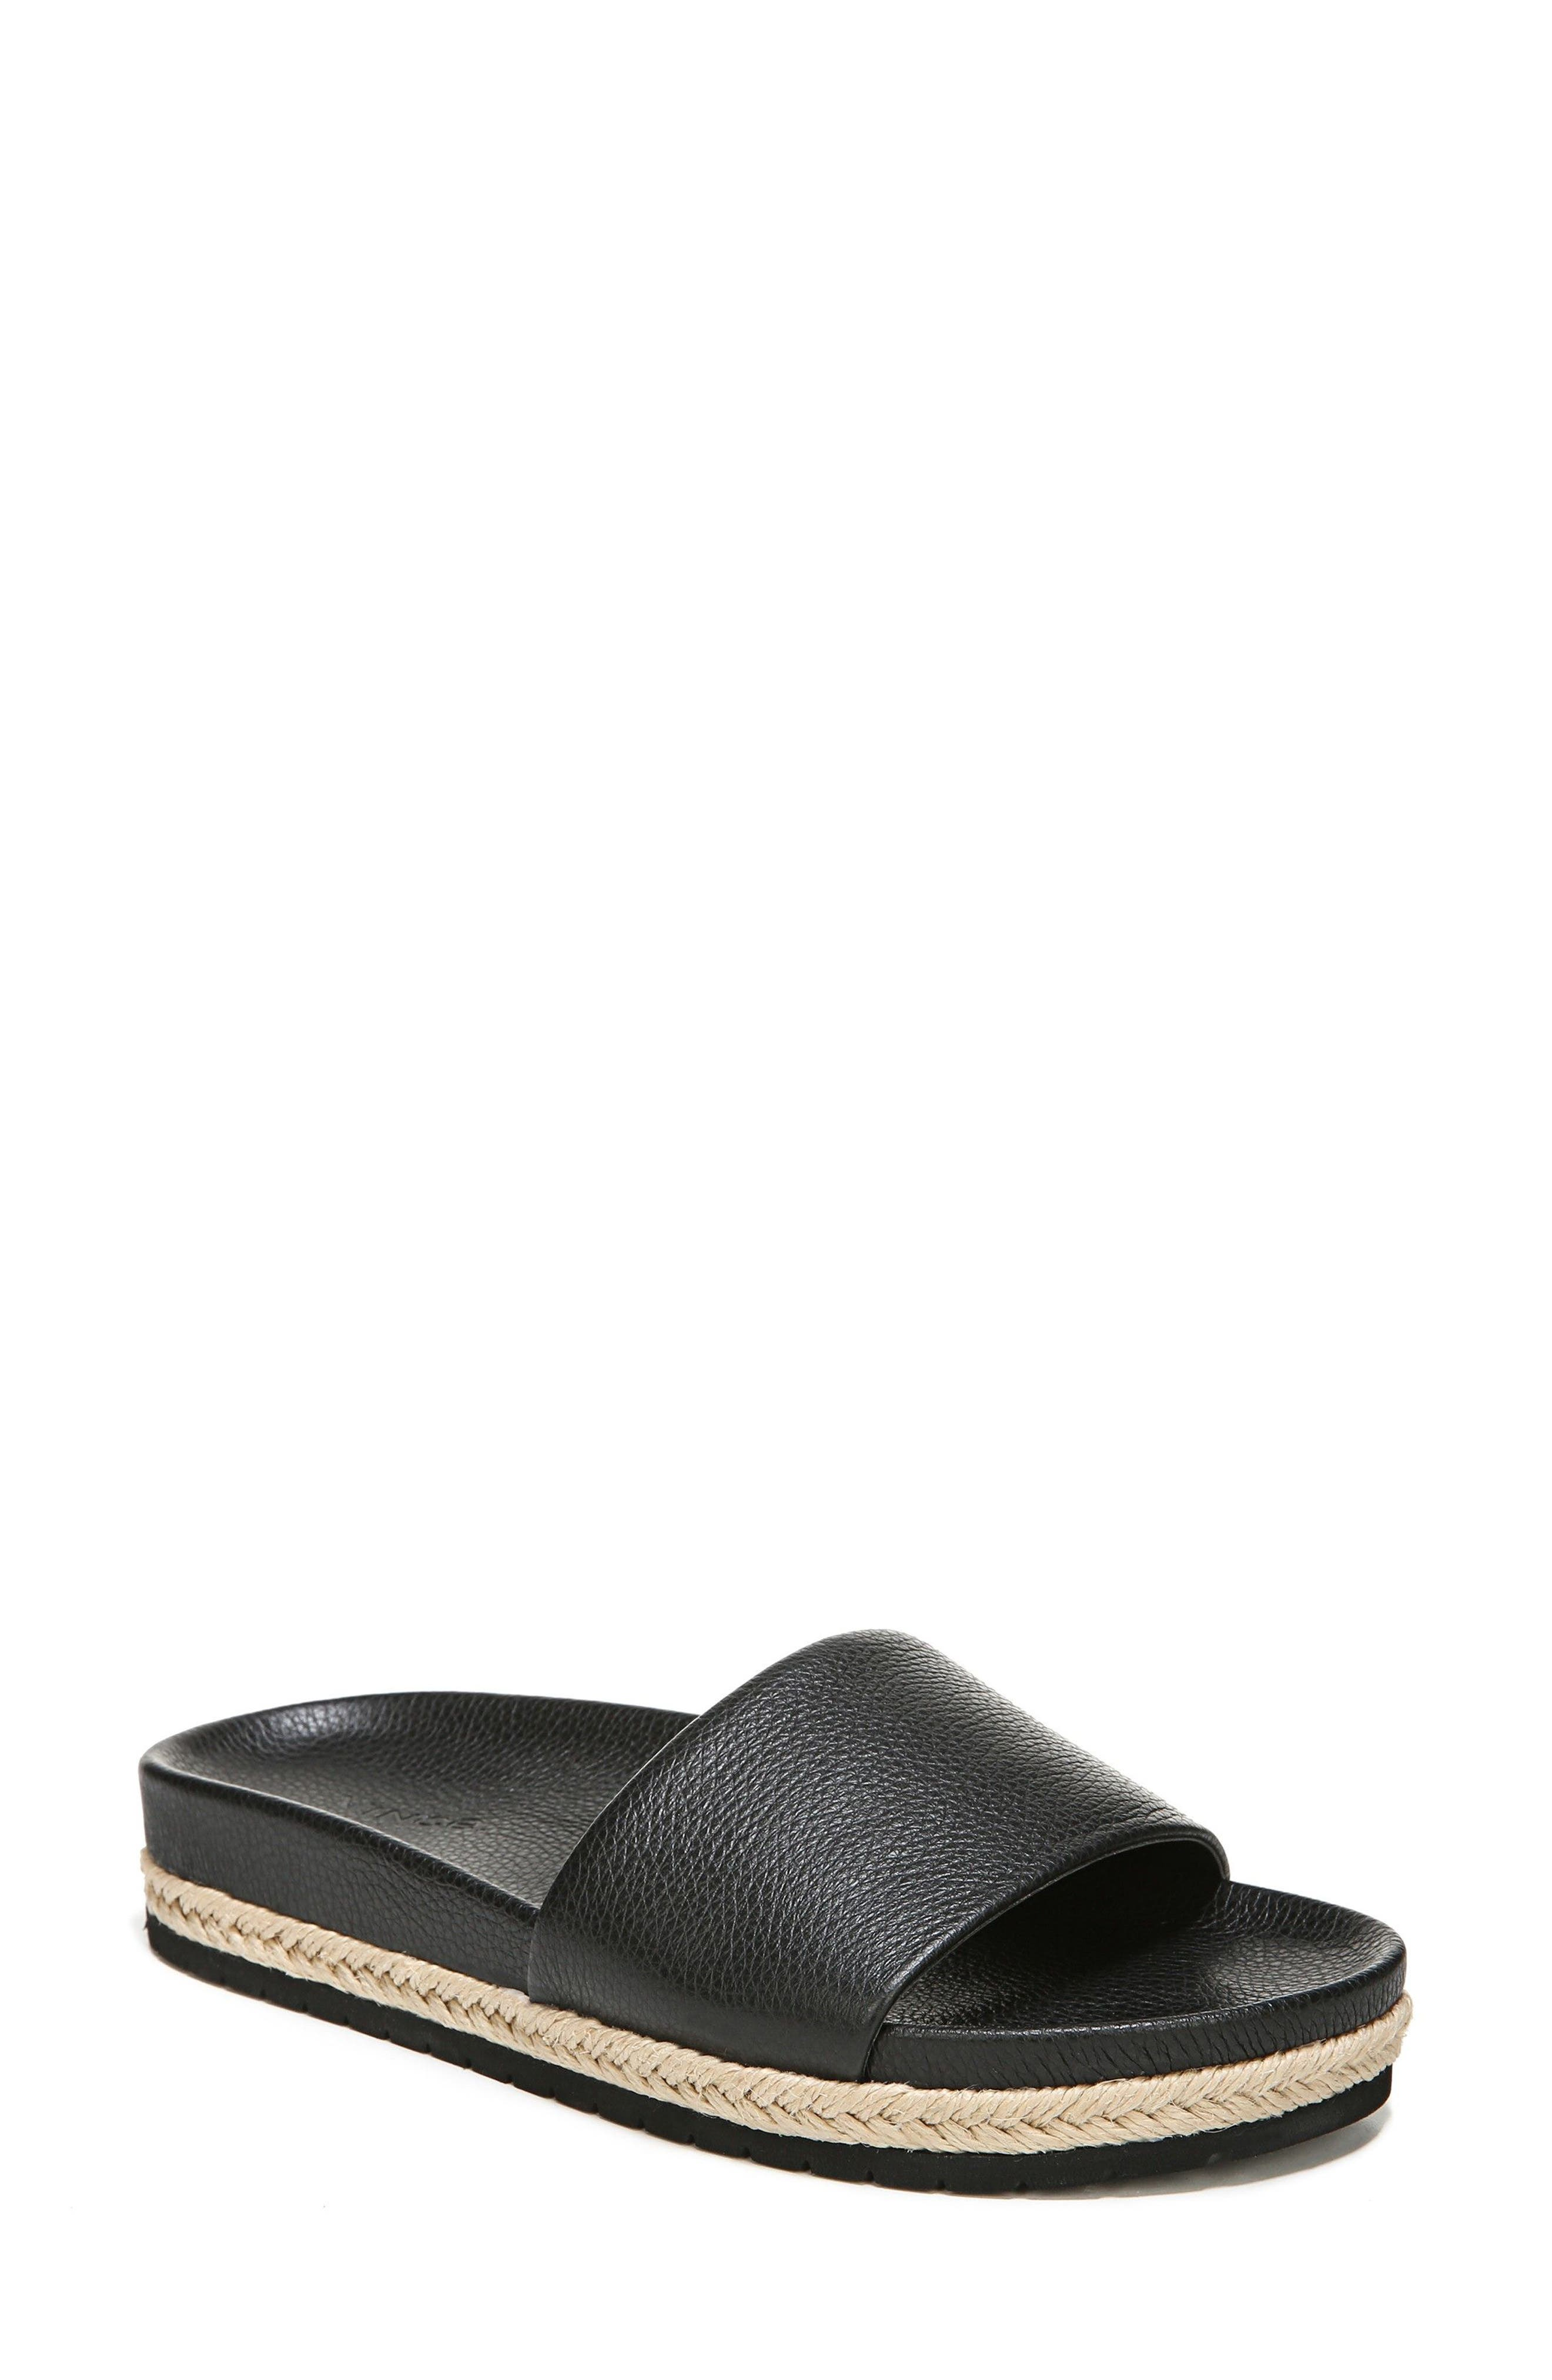 Aurelia Slide Sandal,                             Main thumbnail 1, color,                             001